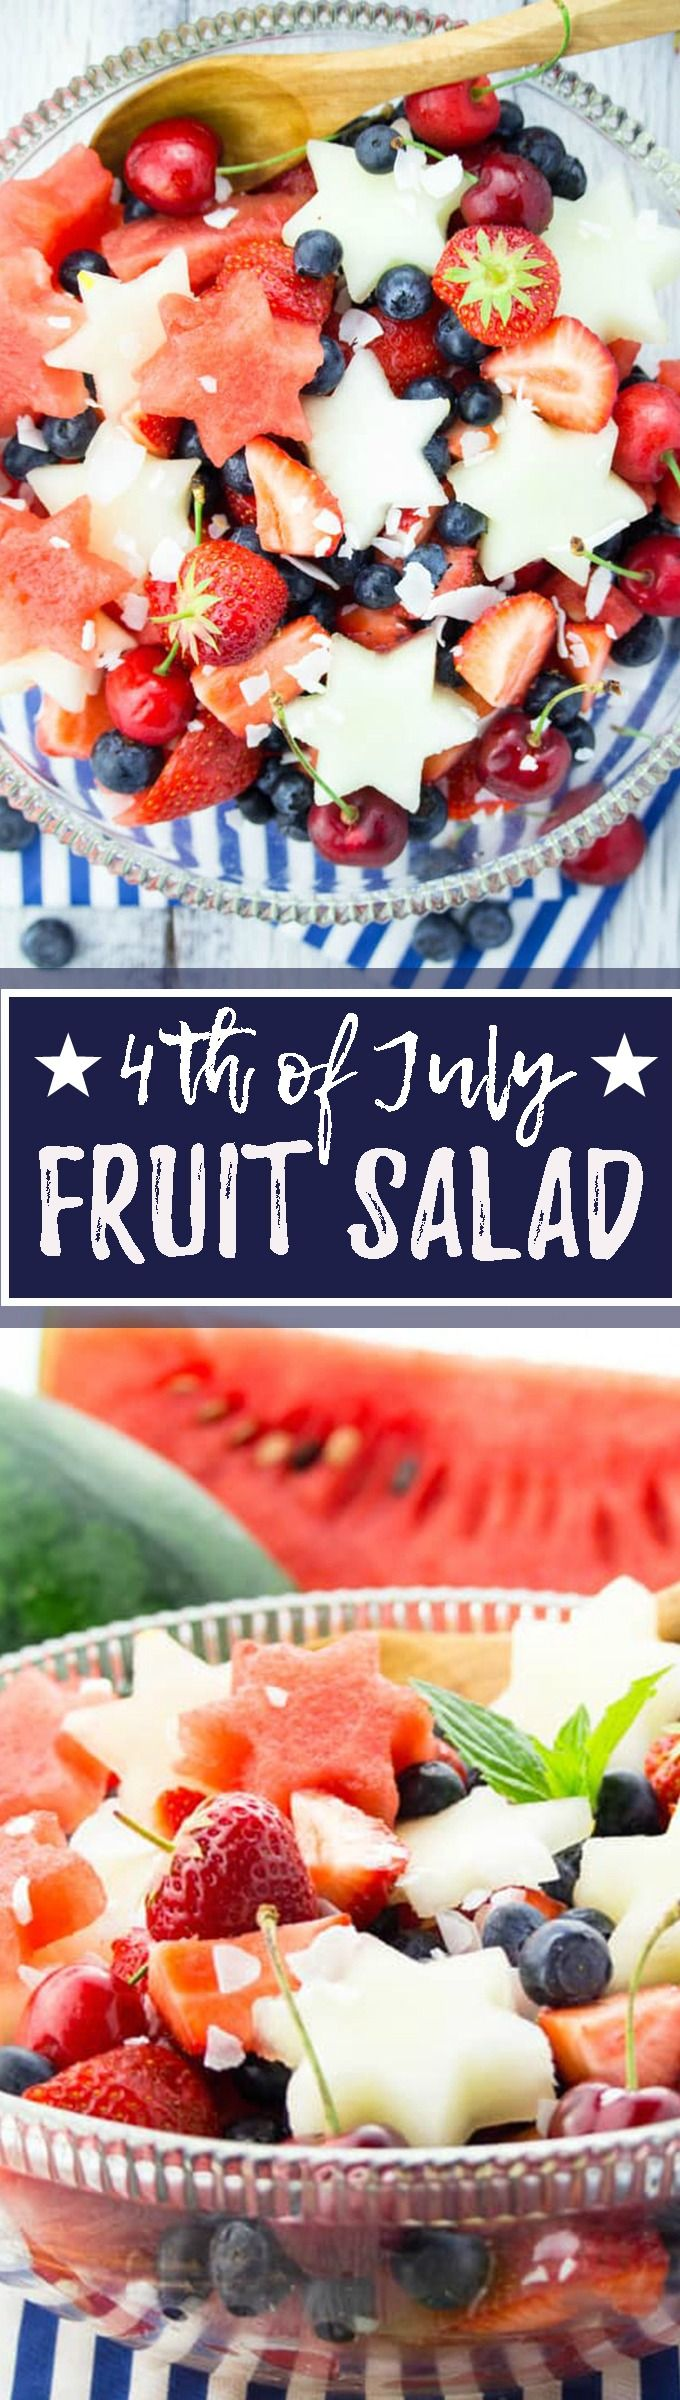 This 4th of July fruit salad with watermelon, honeydew, cherries, and blueberries is not only patriotic but also easy to make, healthy, and so delicious! <3 | veganheaven.org